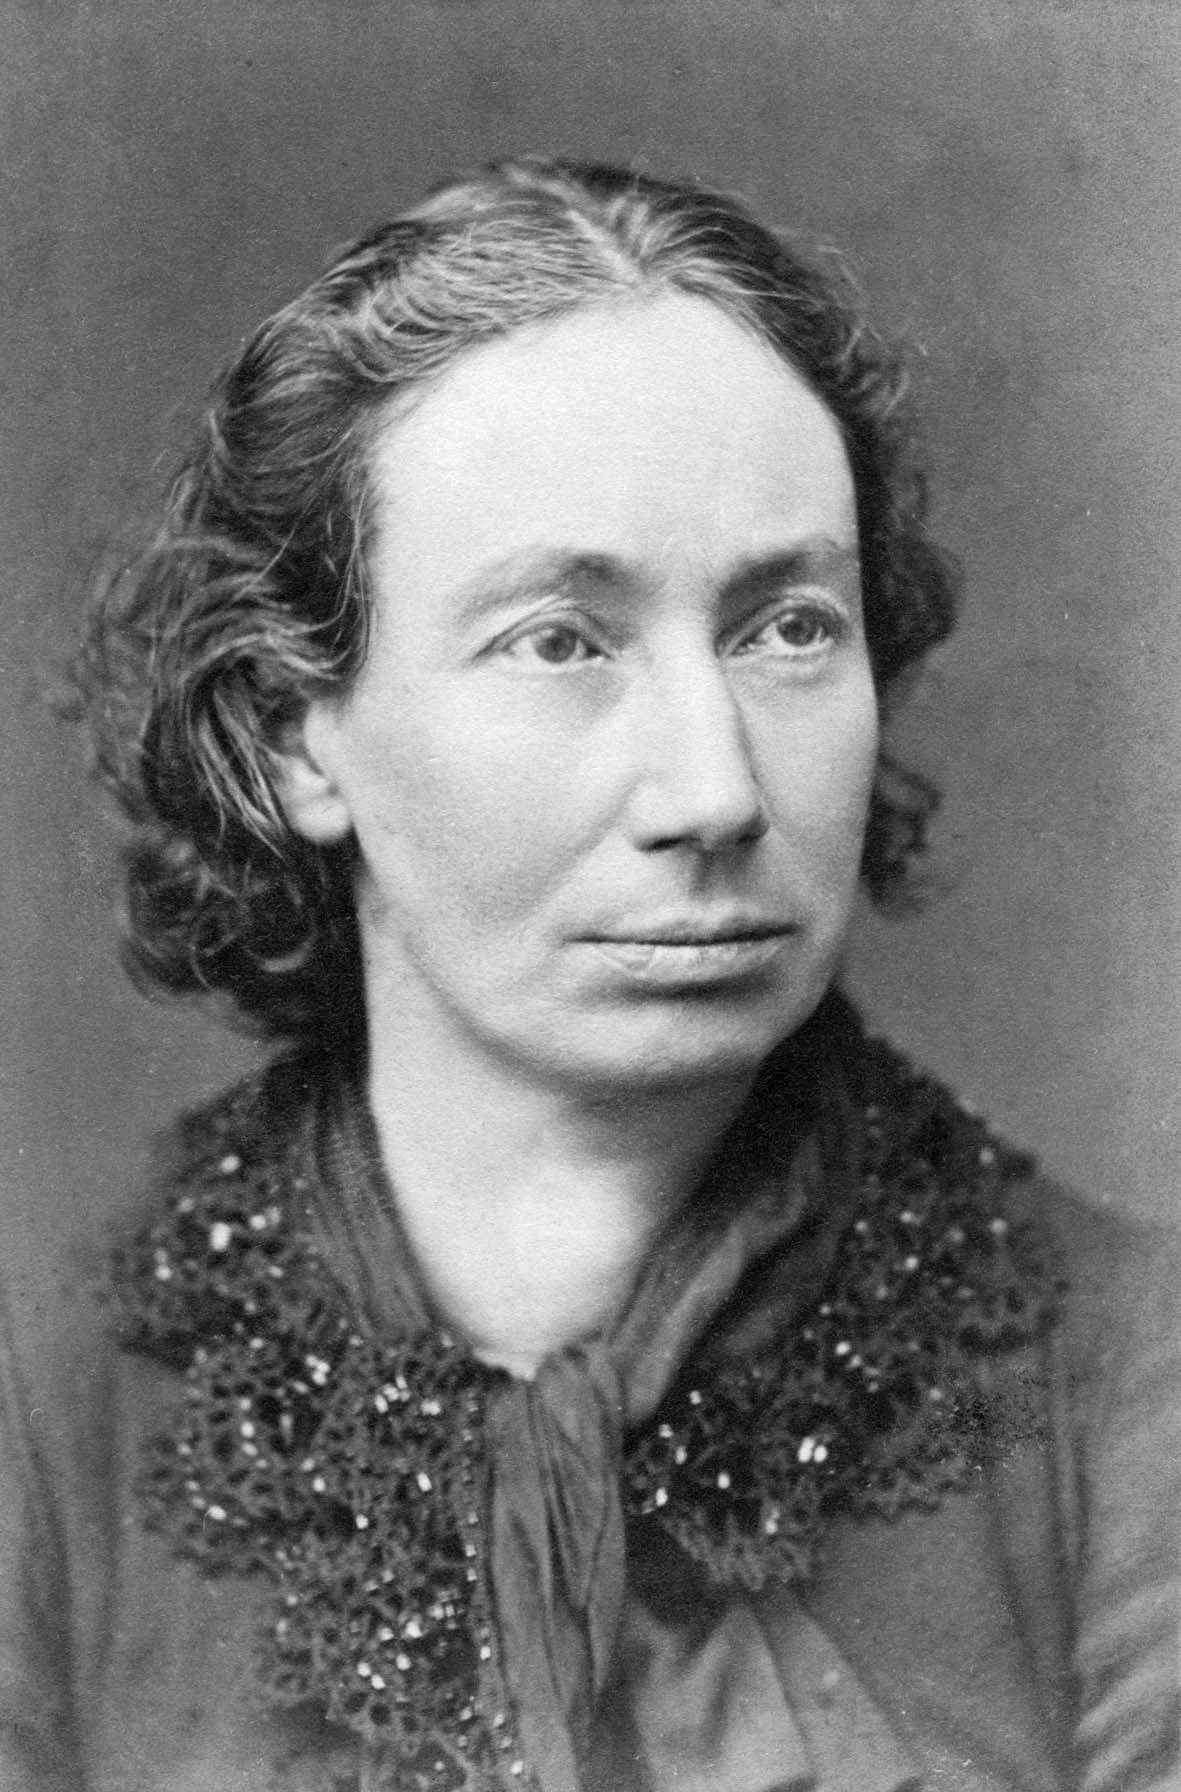 Louise_Michel,_grayscale